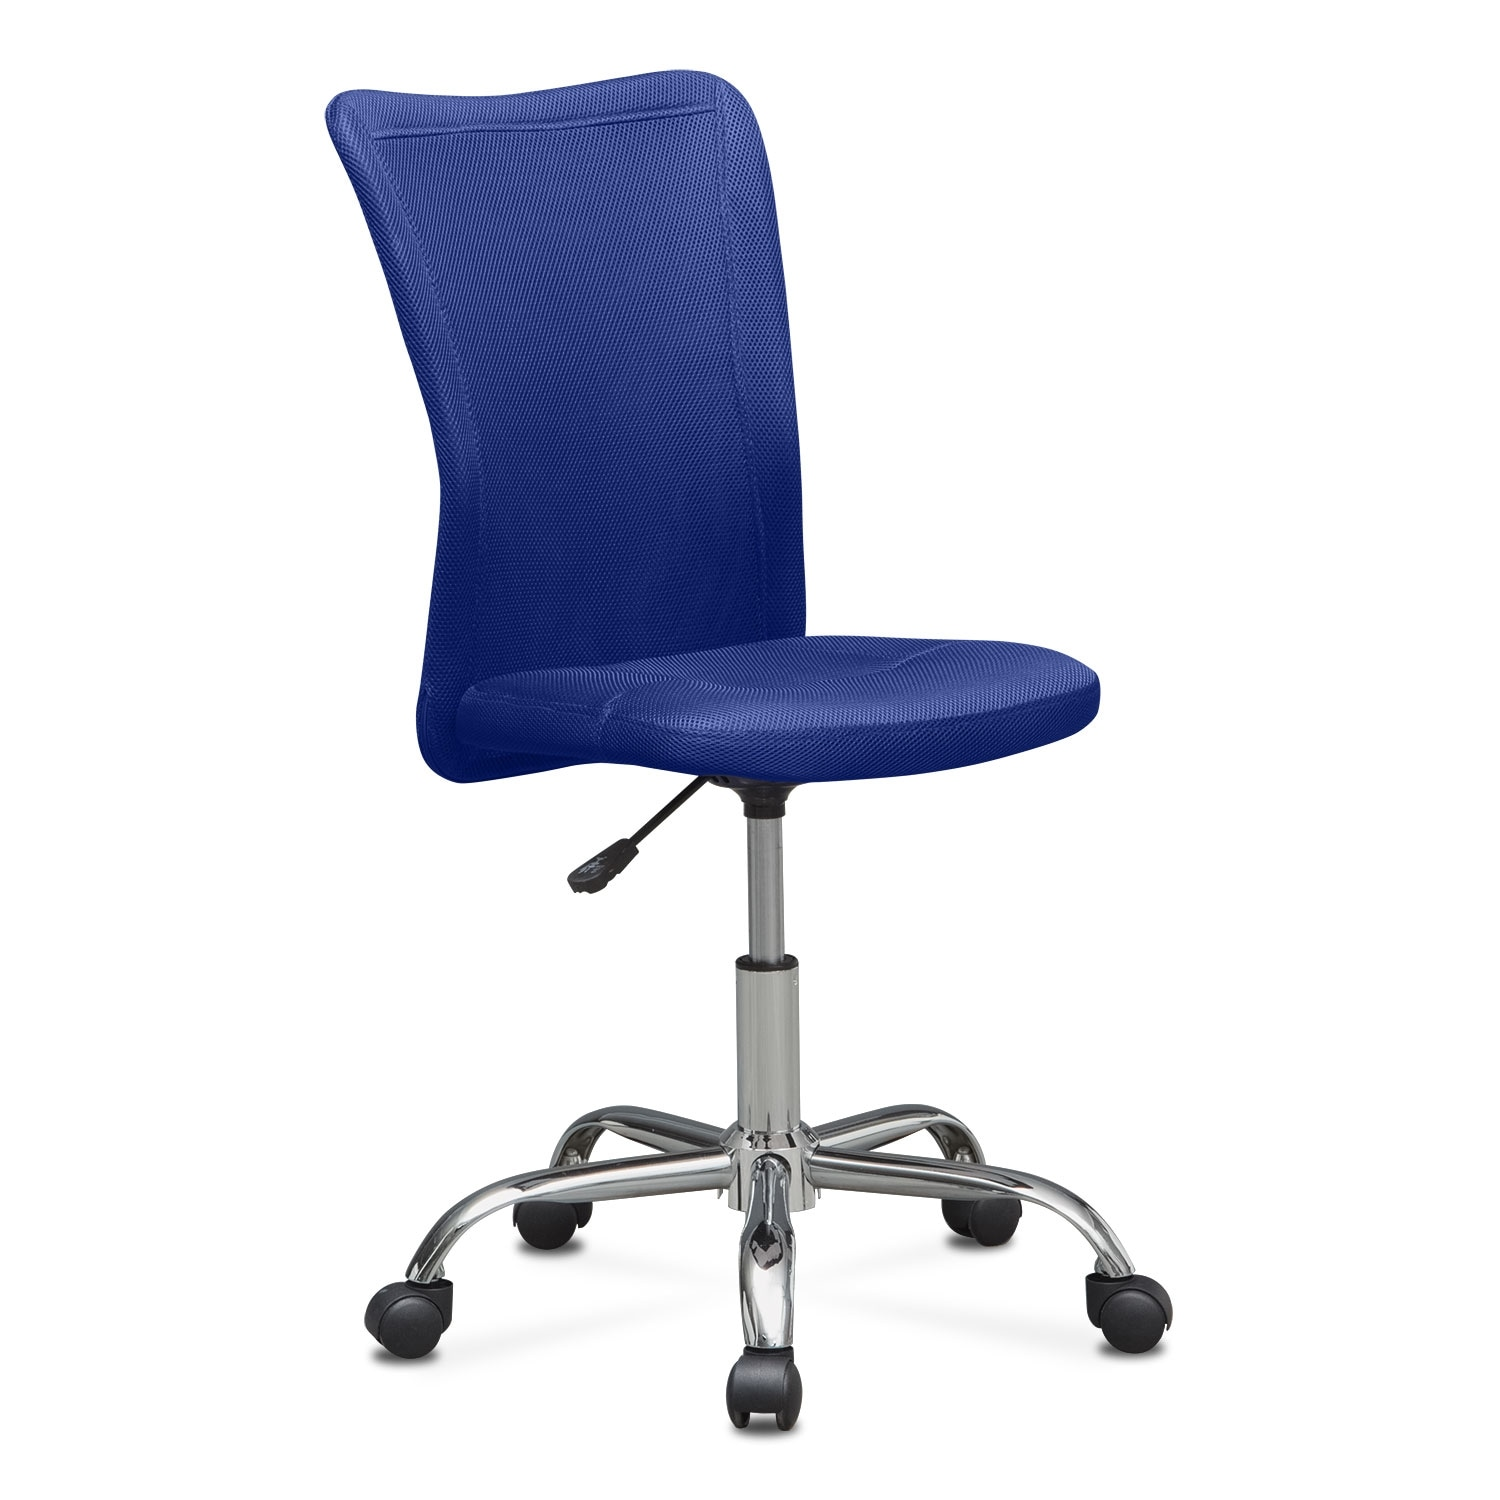 Mist Desk Chair - Blue